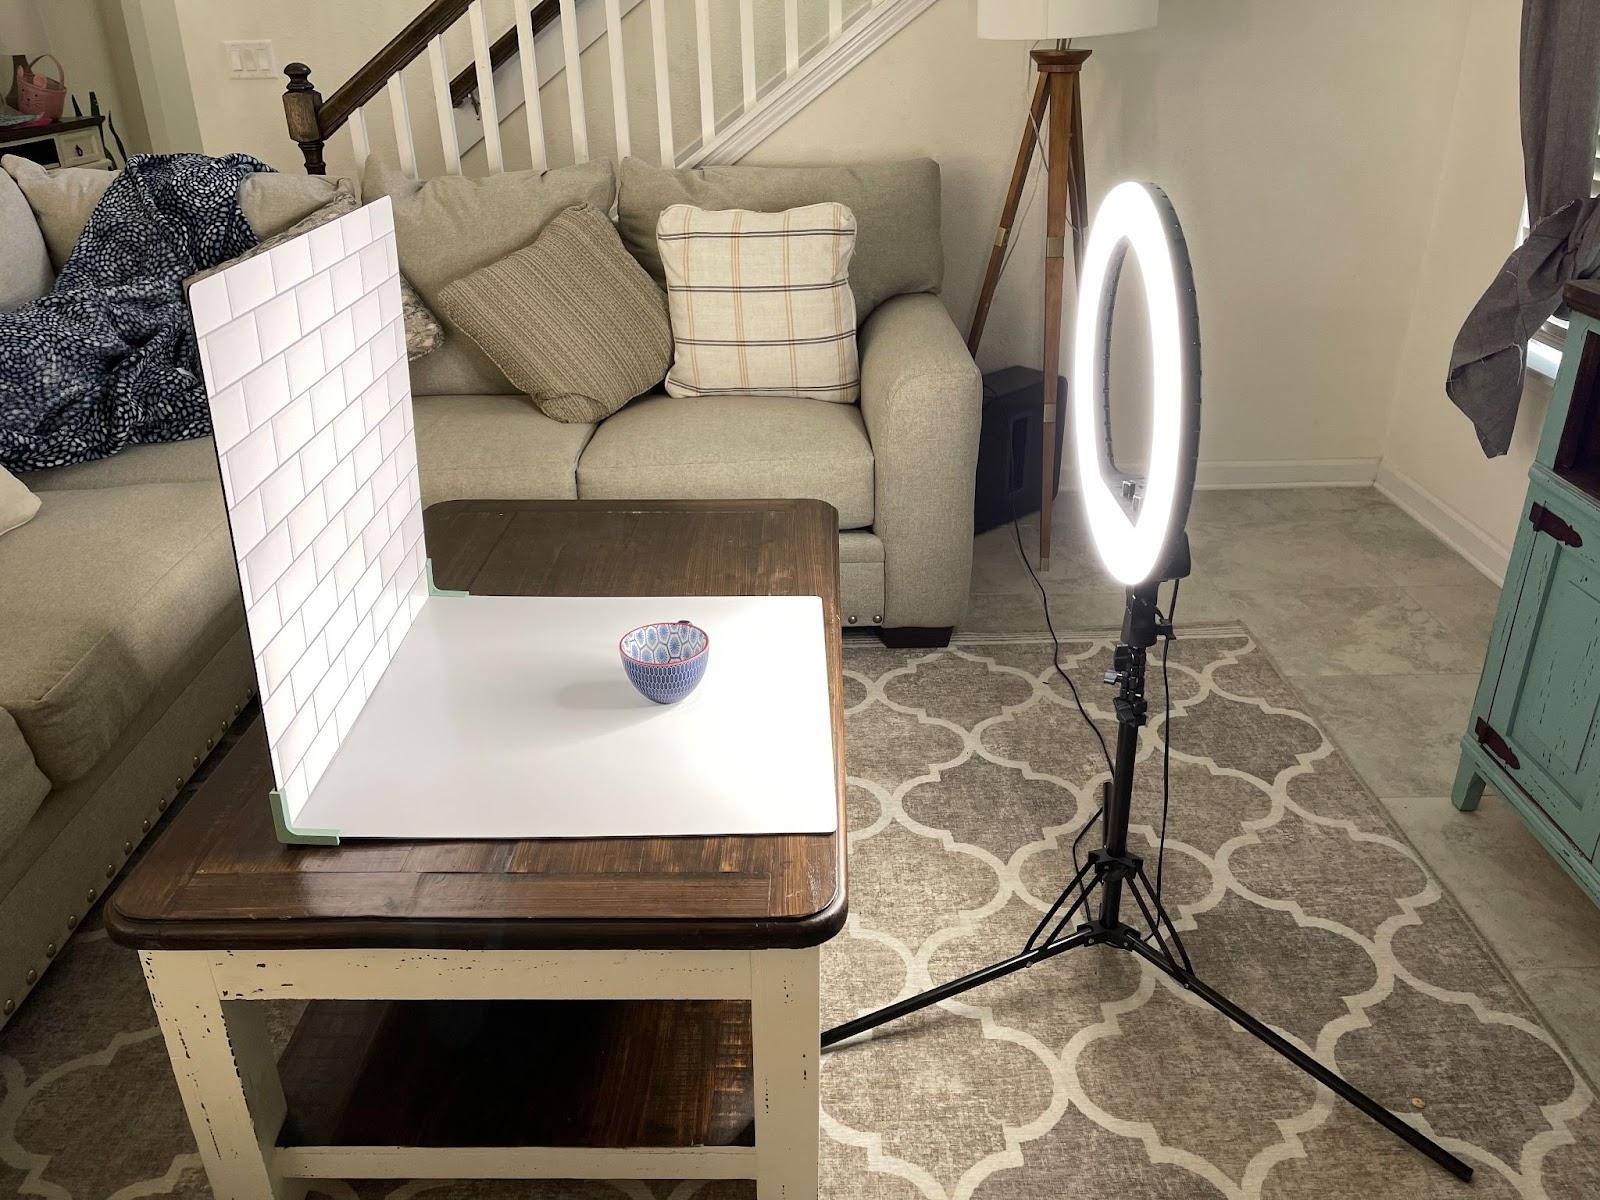 If you can't use natural light for your Etsy product photography, consider buying lighting equipment.